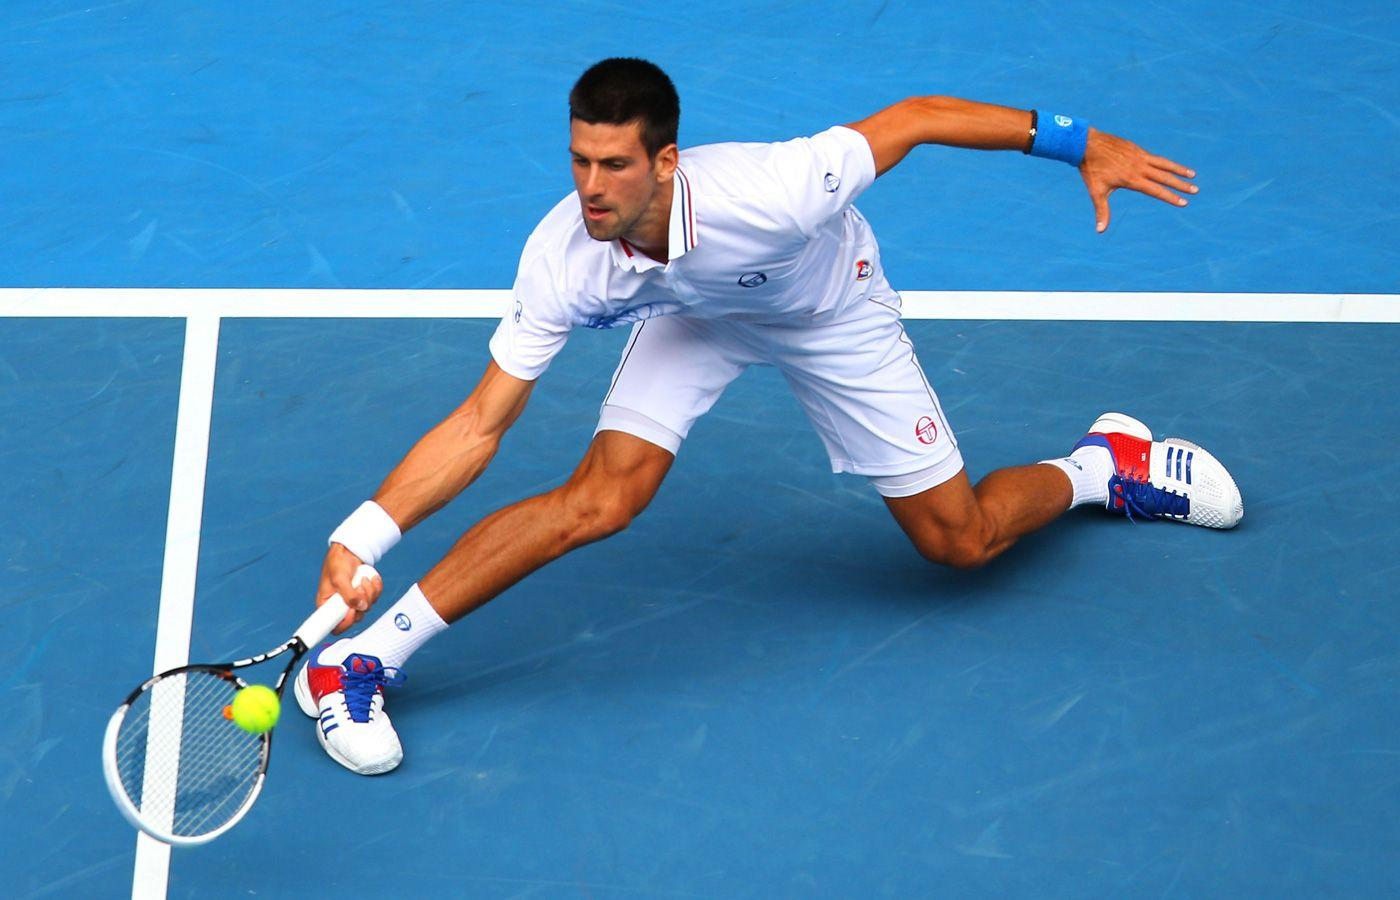 World Sports Hd Wallpapers: Novak Djokovic Hd Wallpapers